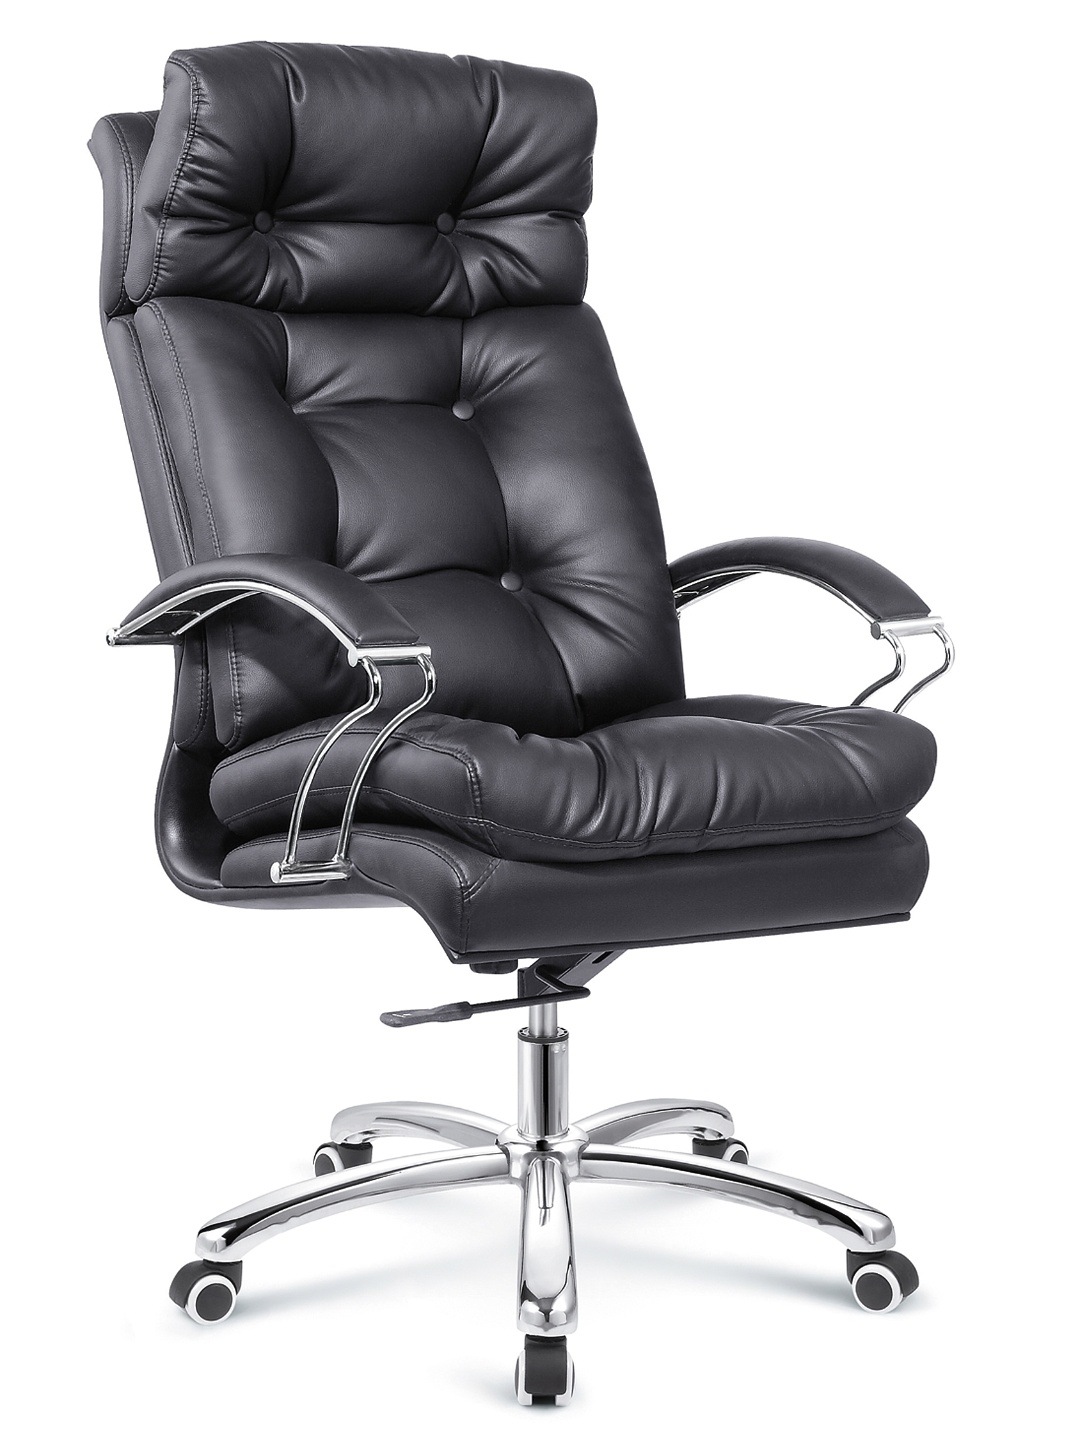 Picture of: China Big Class Boss Class Desk Leather Office Swivel Chair China Leather Chair Boss Chair